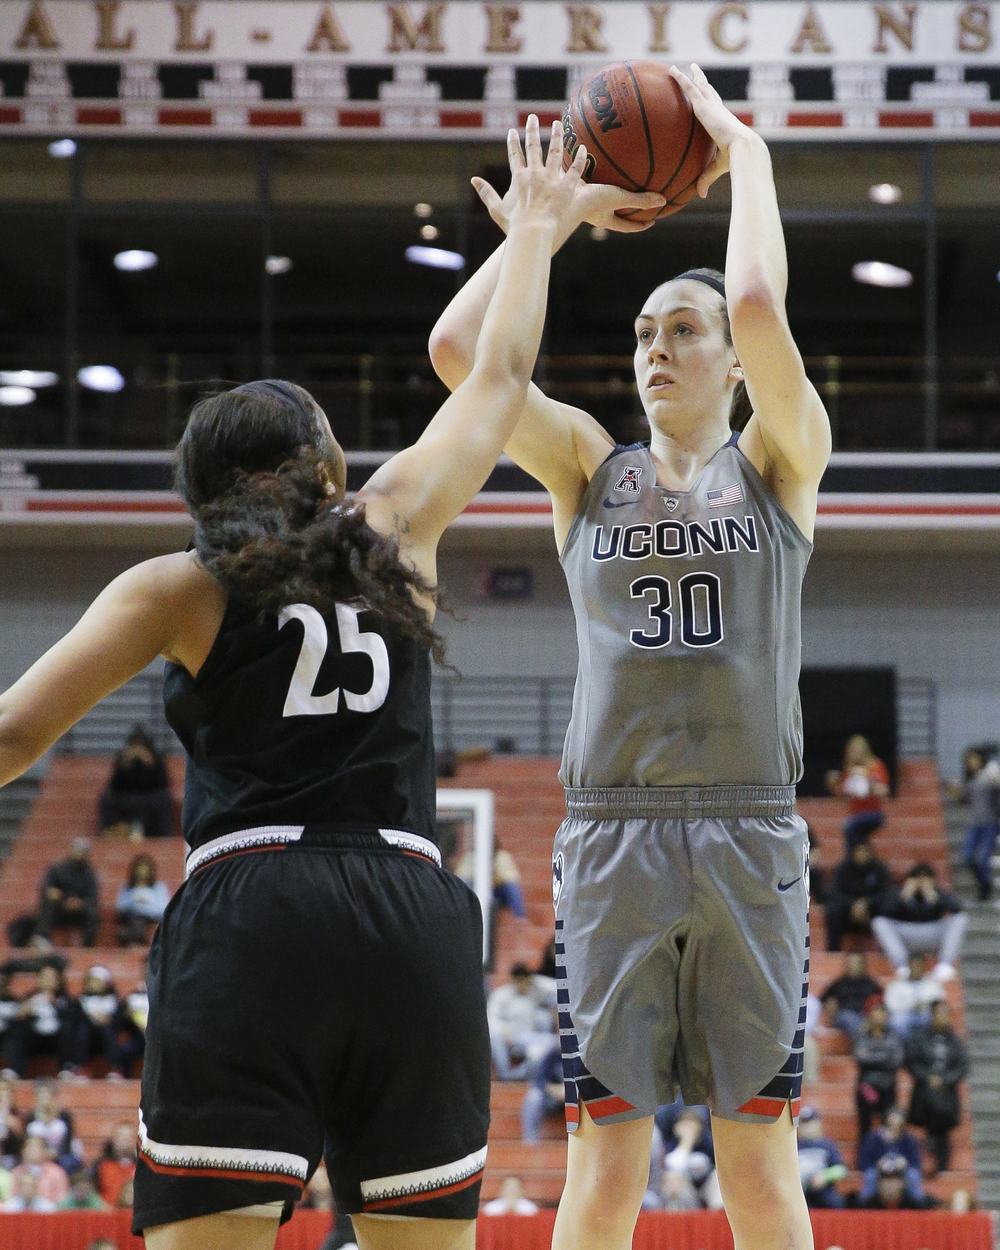 Connecticut's Breanna Stewart (30) shoots over Cincinnati's Chelsea Warren (25) in the first half of an NCAA college basketball game, Wednesday, Dec. 30, 2015, in Cincinnati. (AP Photo/John Minchillo)